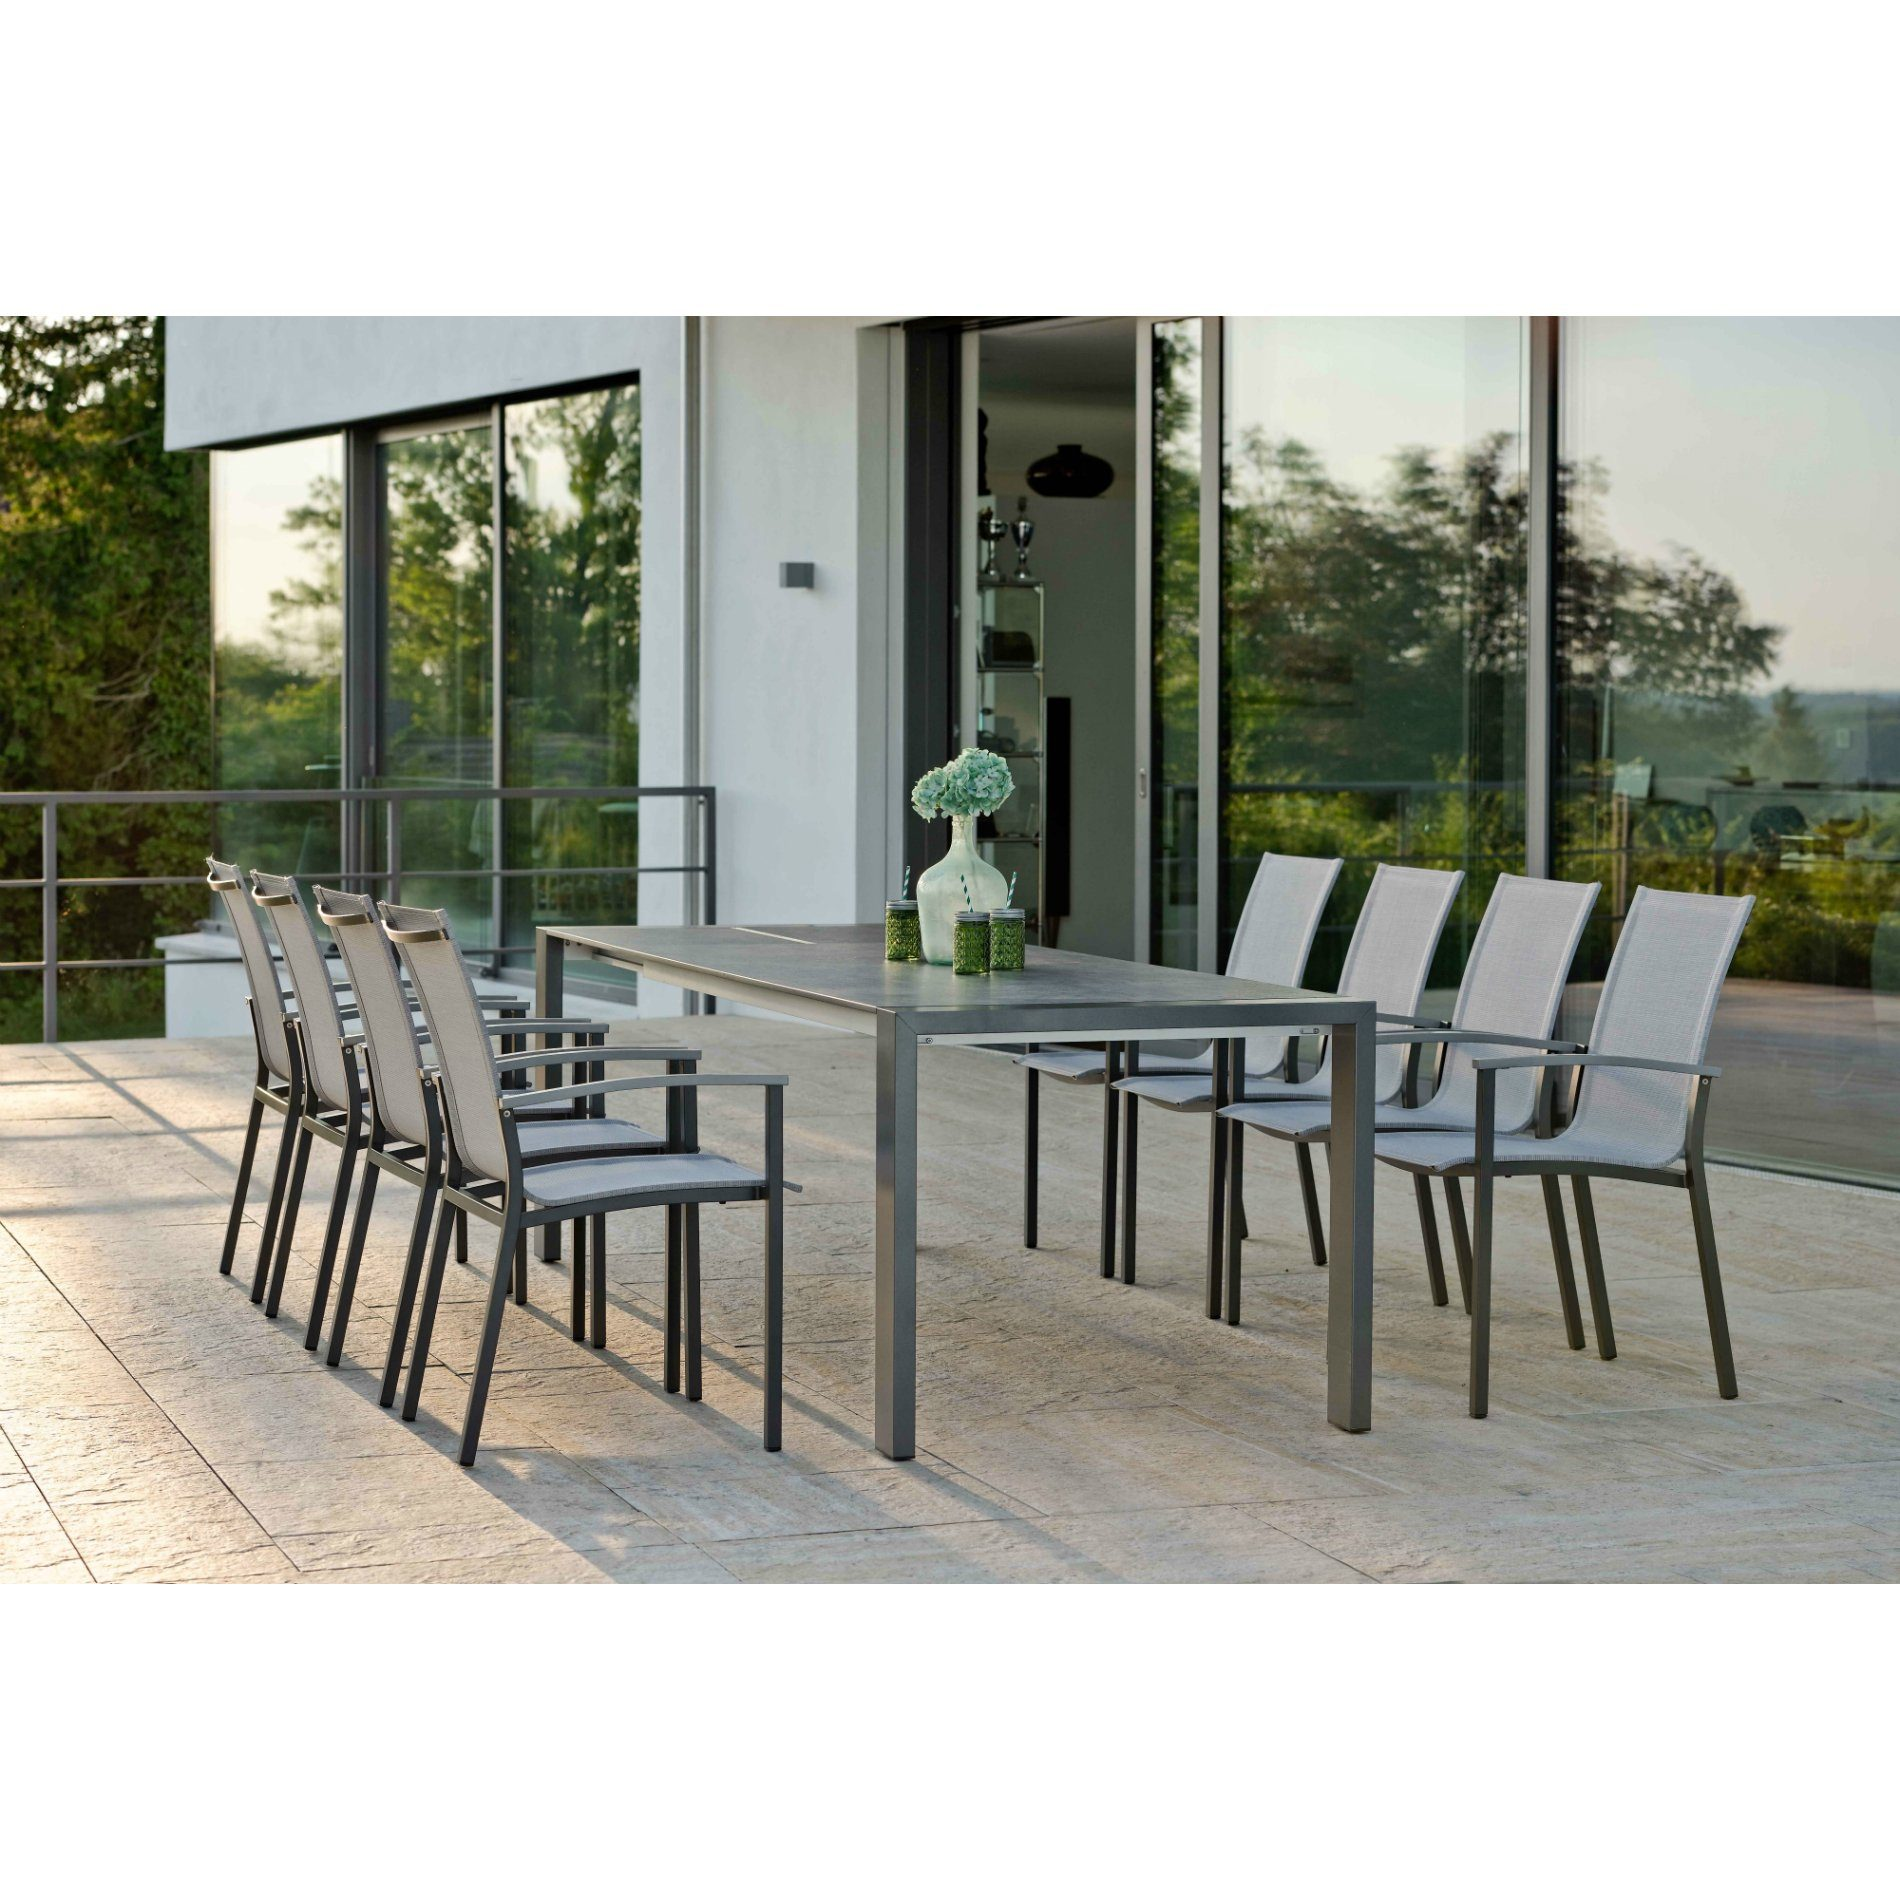 stern gartenm bel set mit stuhl evoee und ausziehtisch aluminium hpl. Black Bedroom Furniture Sets. Home Design Ideas